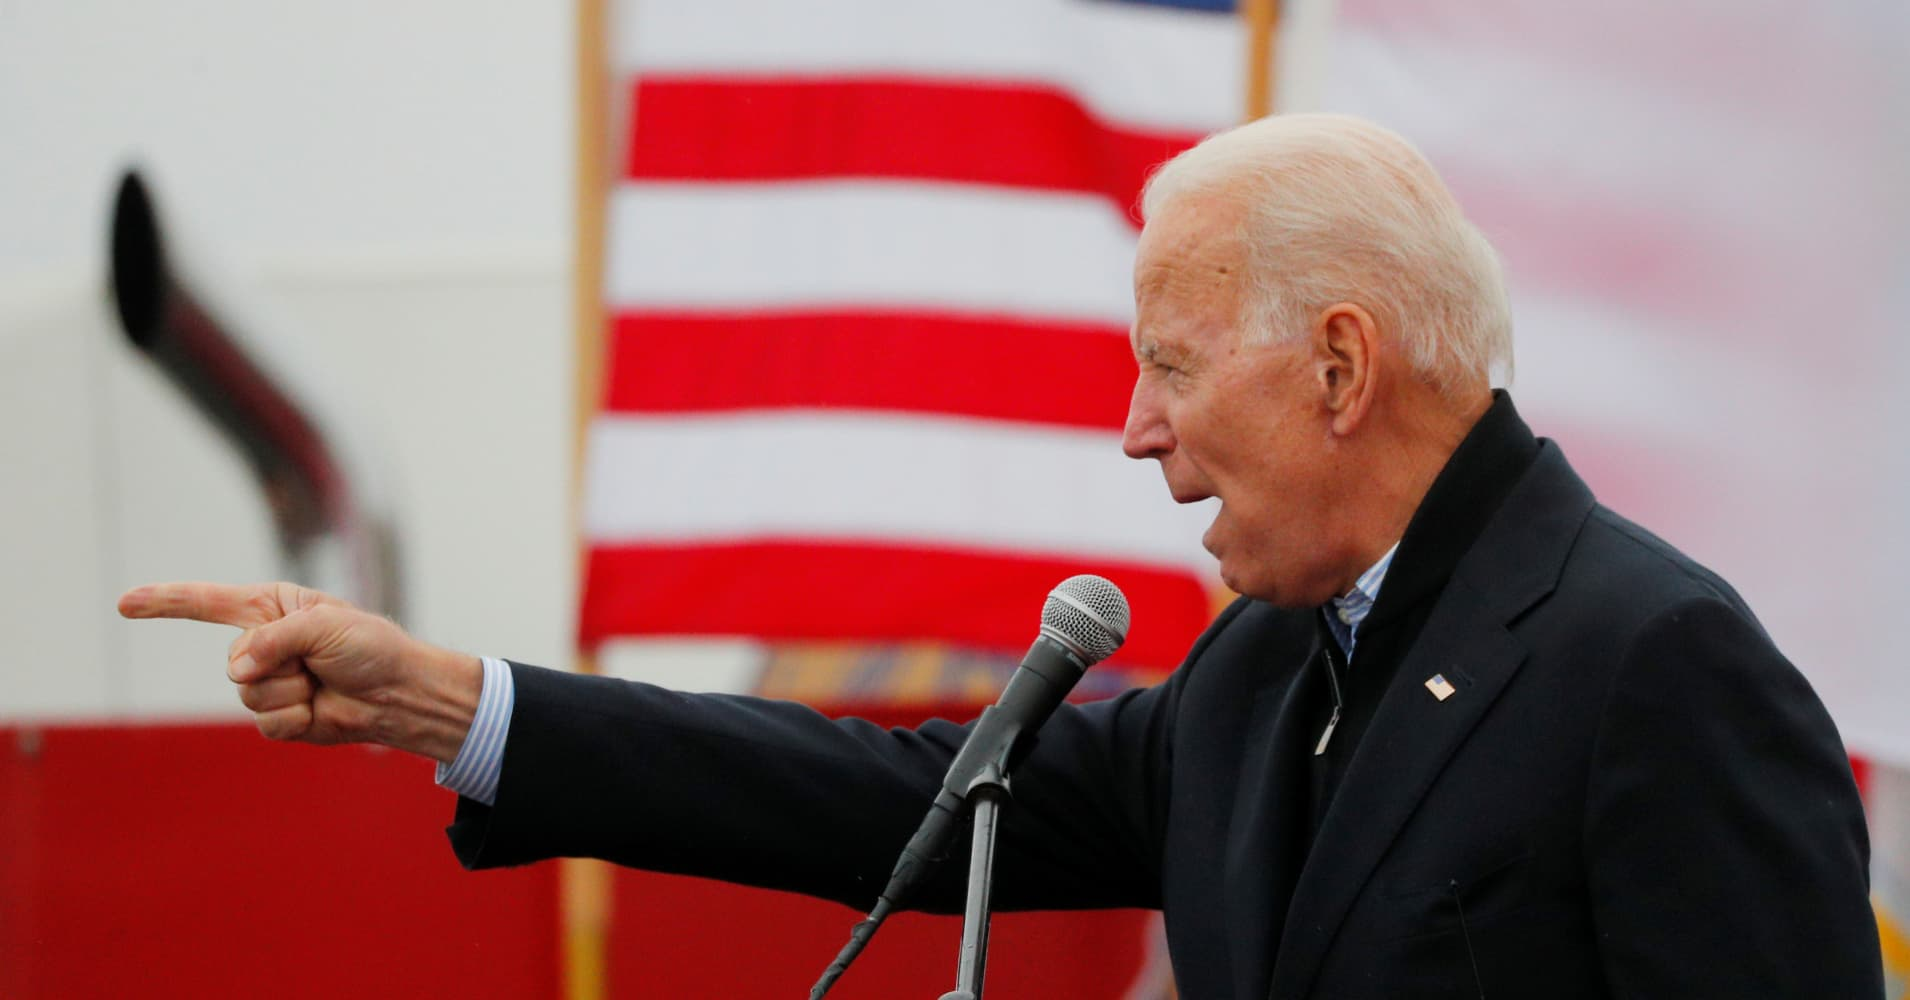 Joe Biden tells key supporters he is running for president as he lines up fundraising help